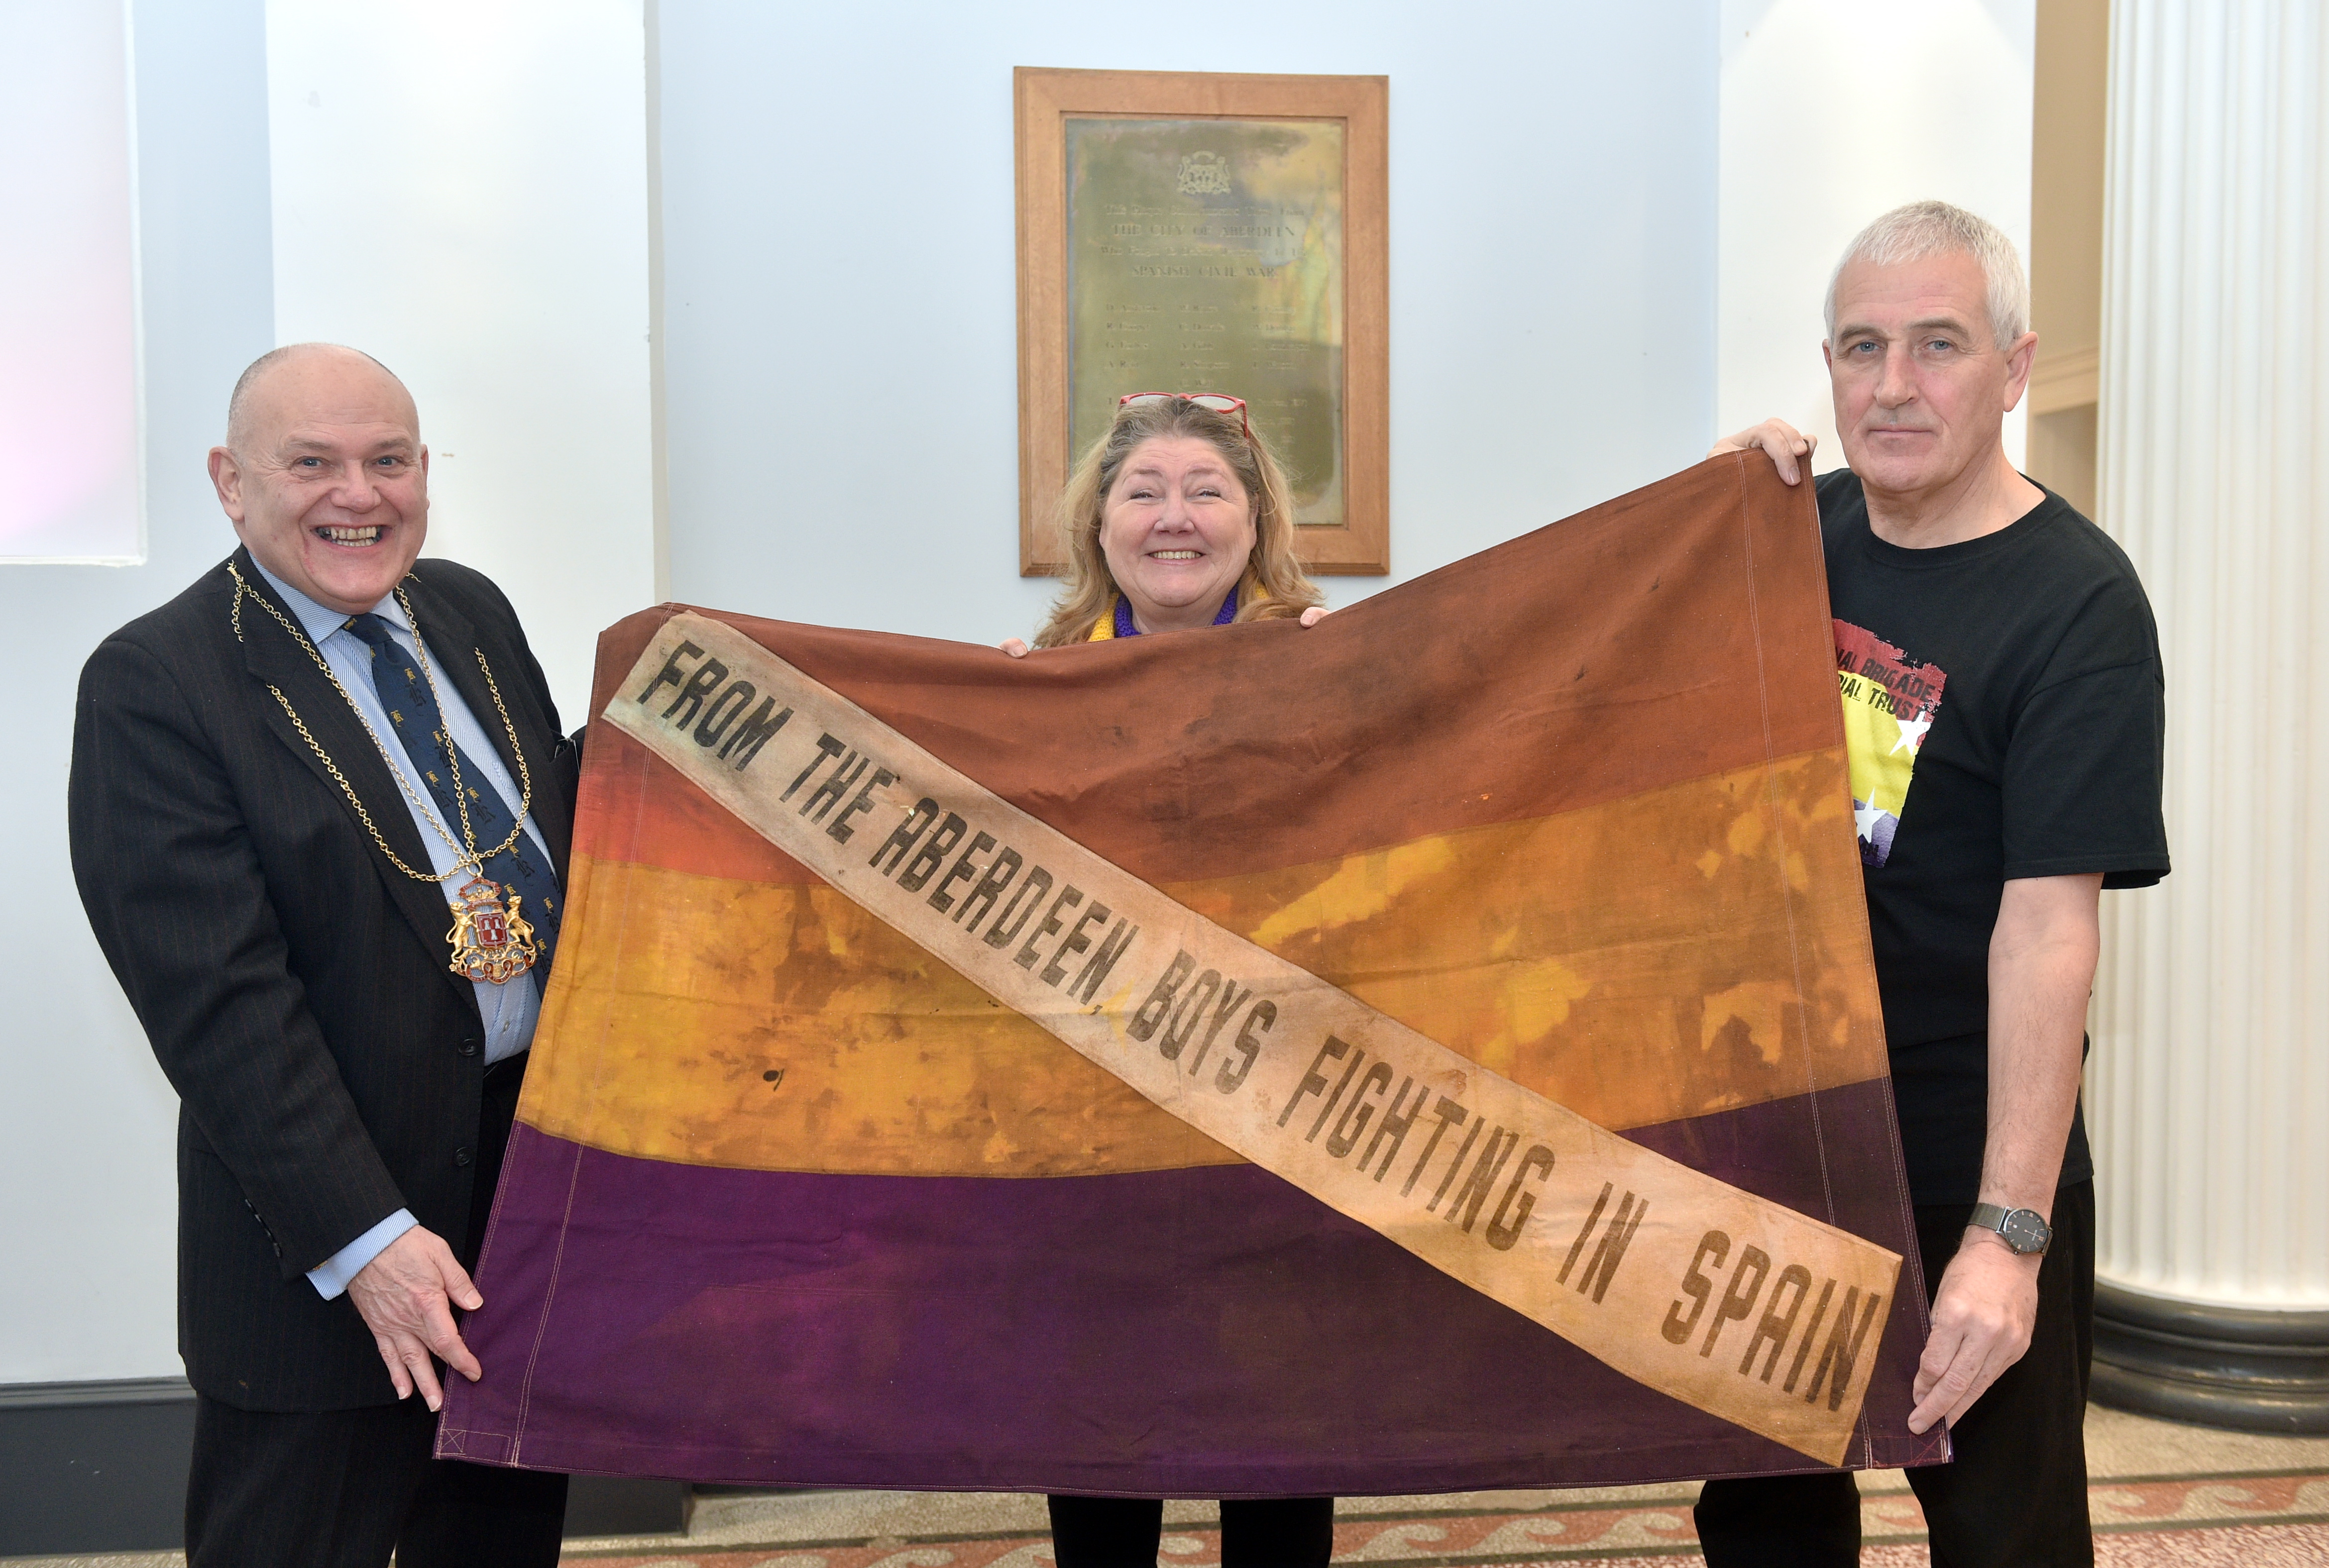 Lord Provost Barney Crockett, Maureen Saunders and former union organiser Tommy Campbell at re-dedication service for the memorial plaque for the XV international brigade held at the Music Hall.  Picture by Darrell Benns.